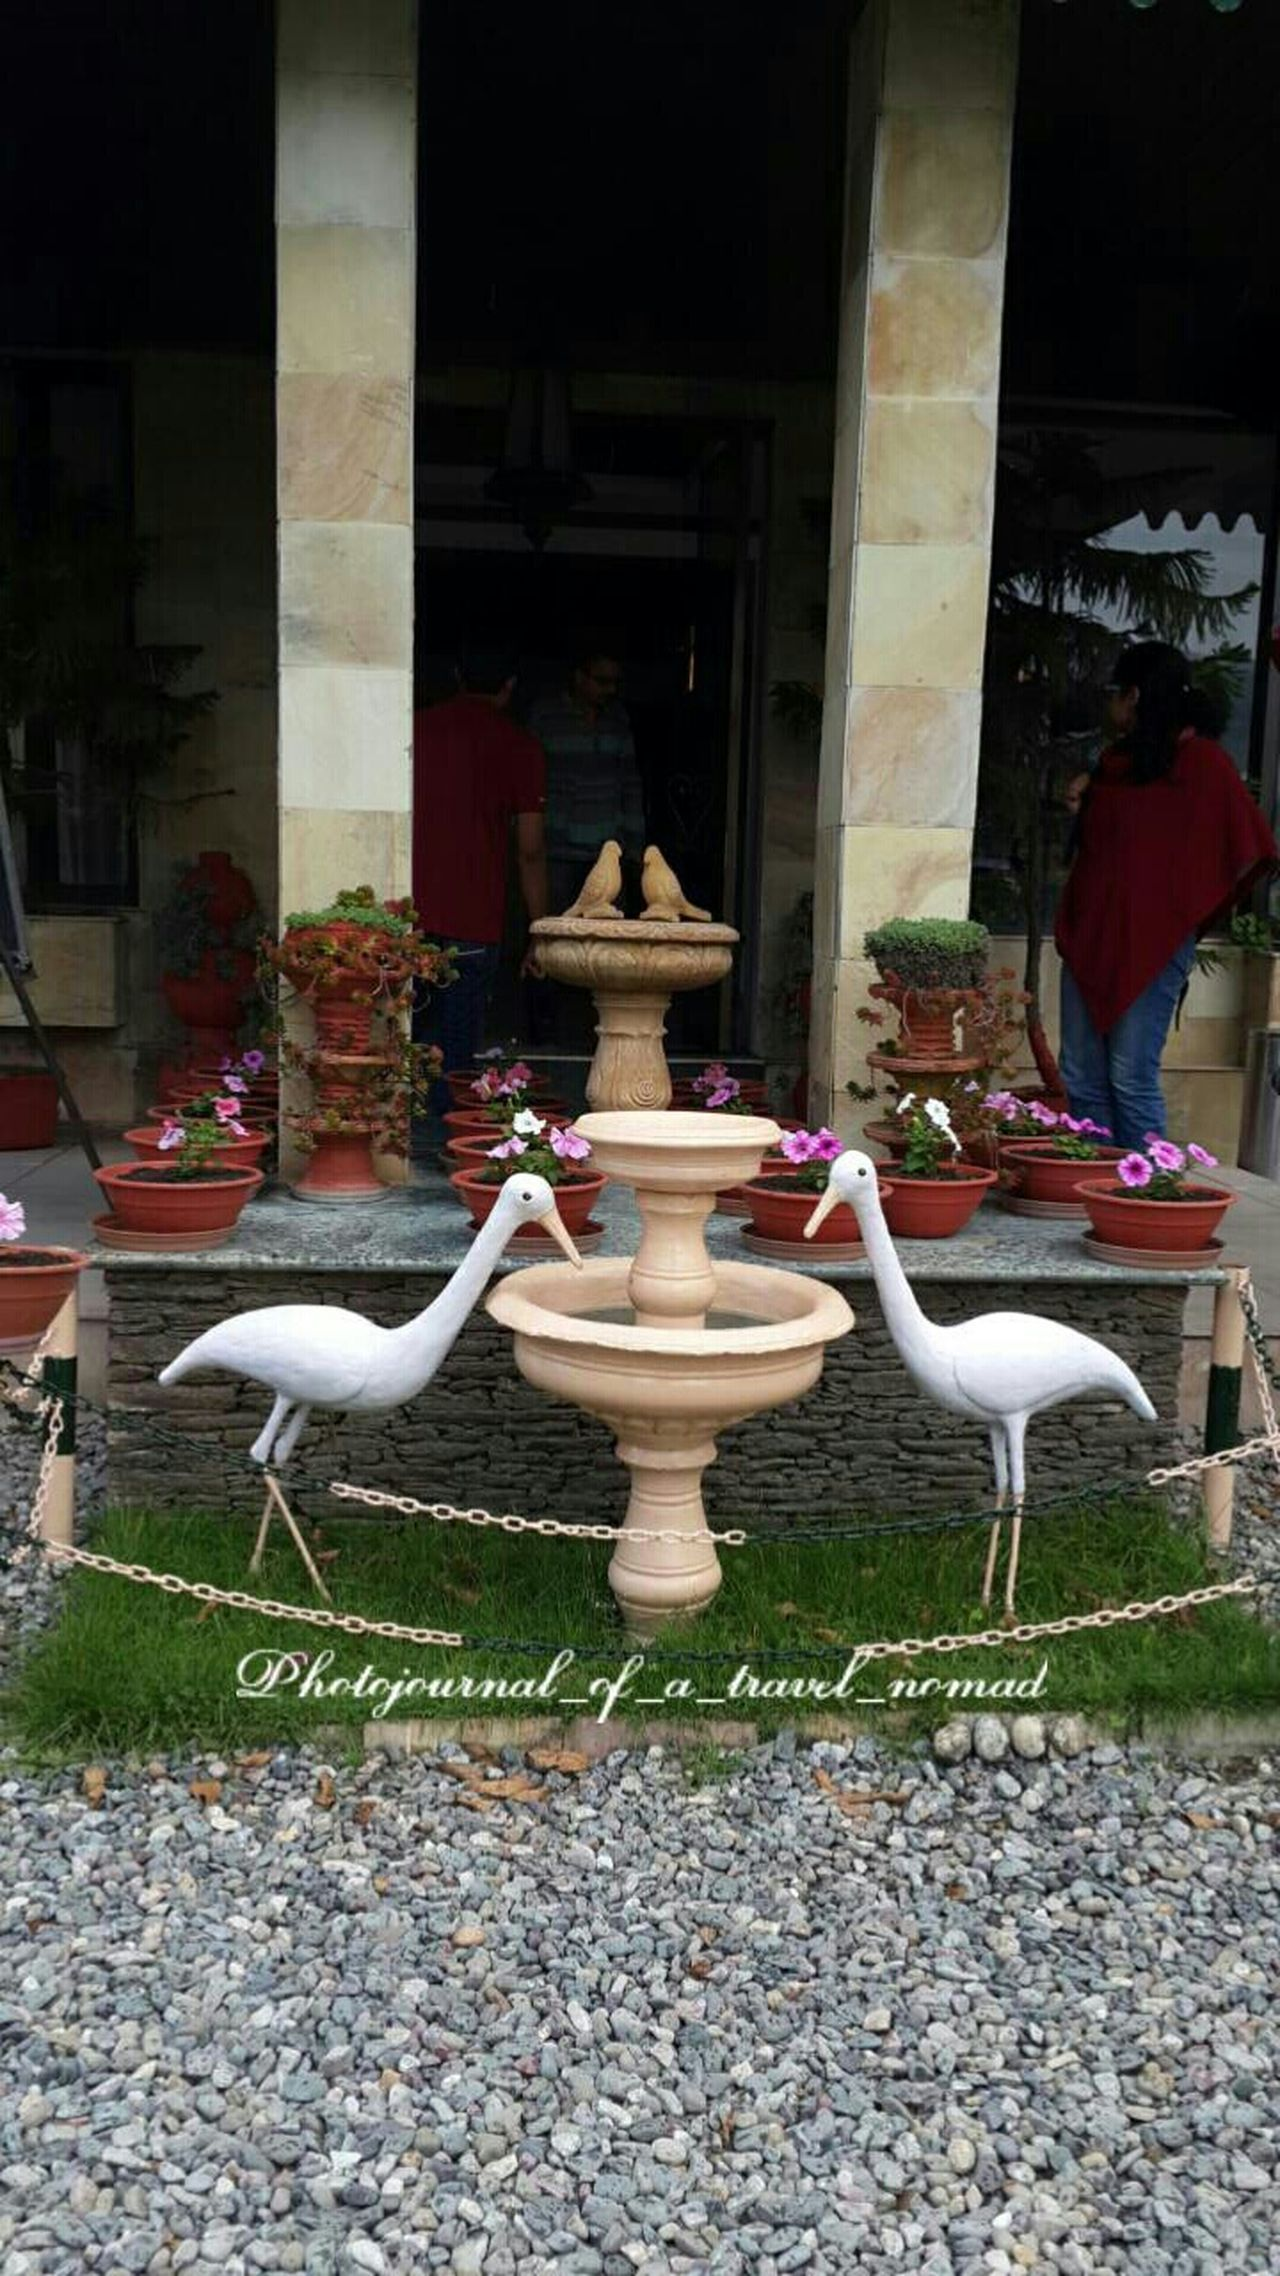 A beautiful welcome ... Eyeem Exclusive Itchyfeet Photojournal_of_a_travel_nomad India_gram Travelphotography Shutterbug_travels EyeEmBestPics Eyeem4photography - Indian Attractions India Travel Diaries Hotel's Front Yard